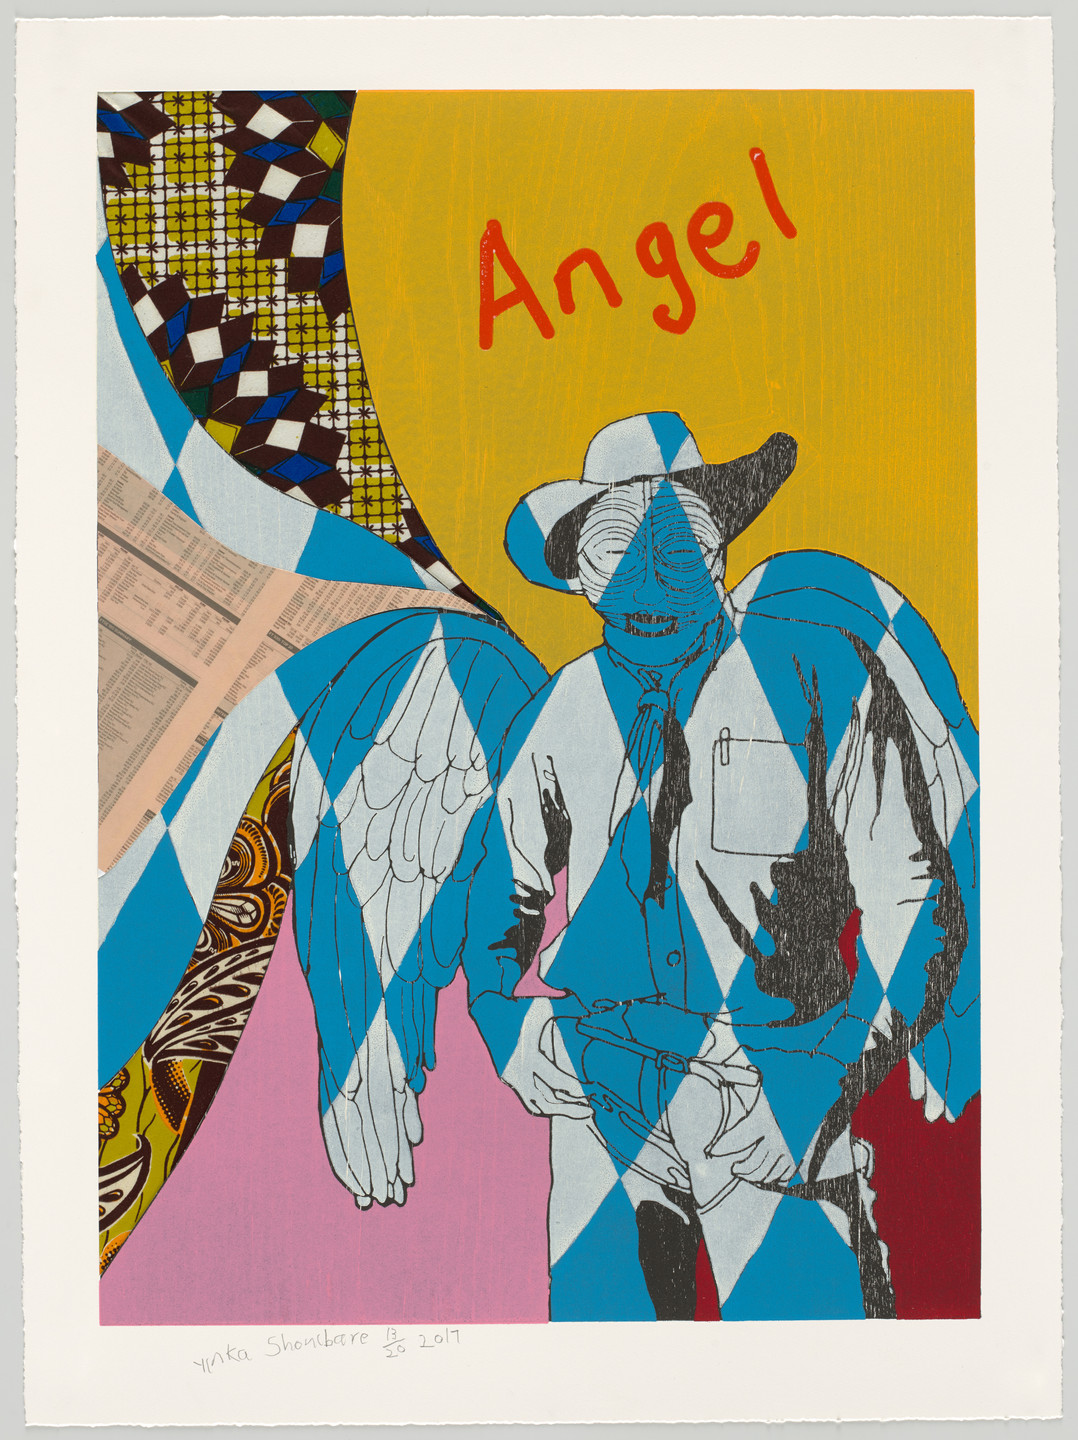 Yinka Shonibare. Cowboy Angels III from Cowboy Angels. 2017